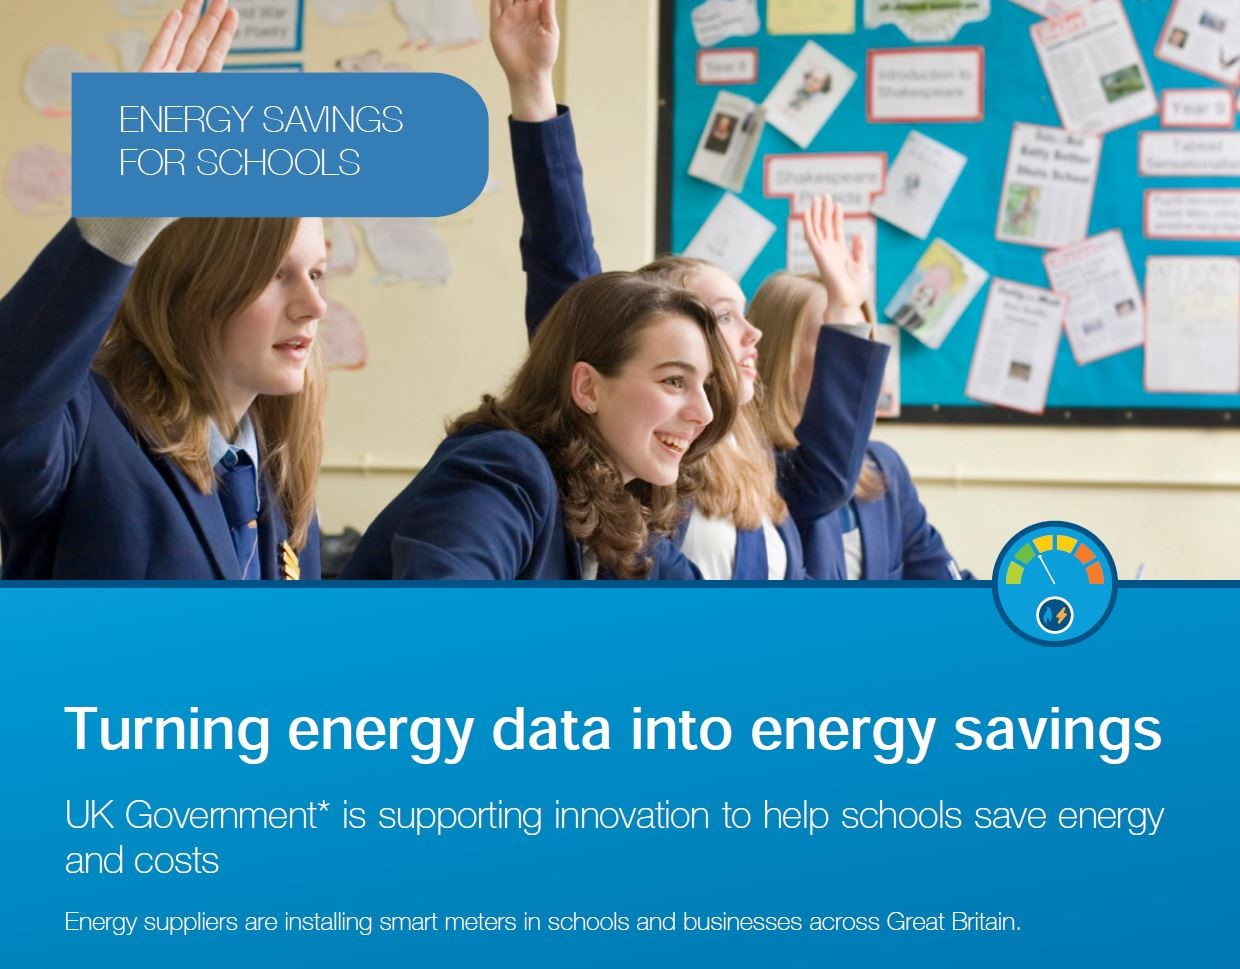 Turning energy data into energy savings